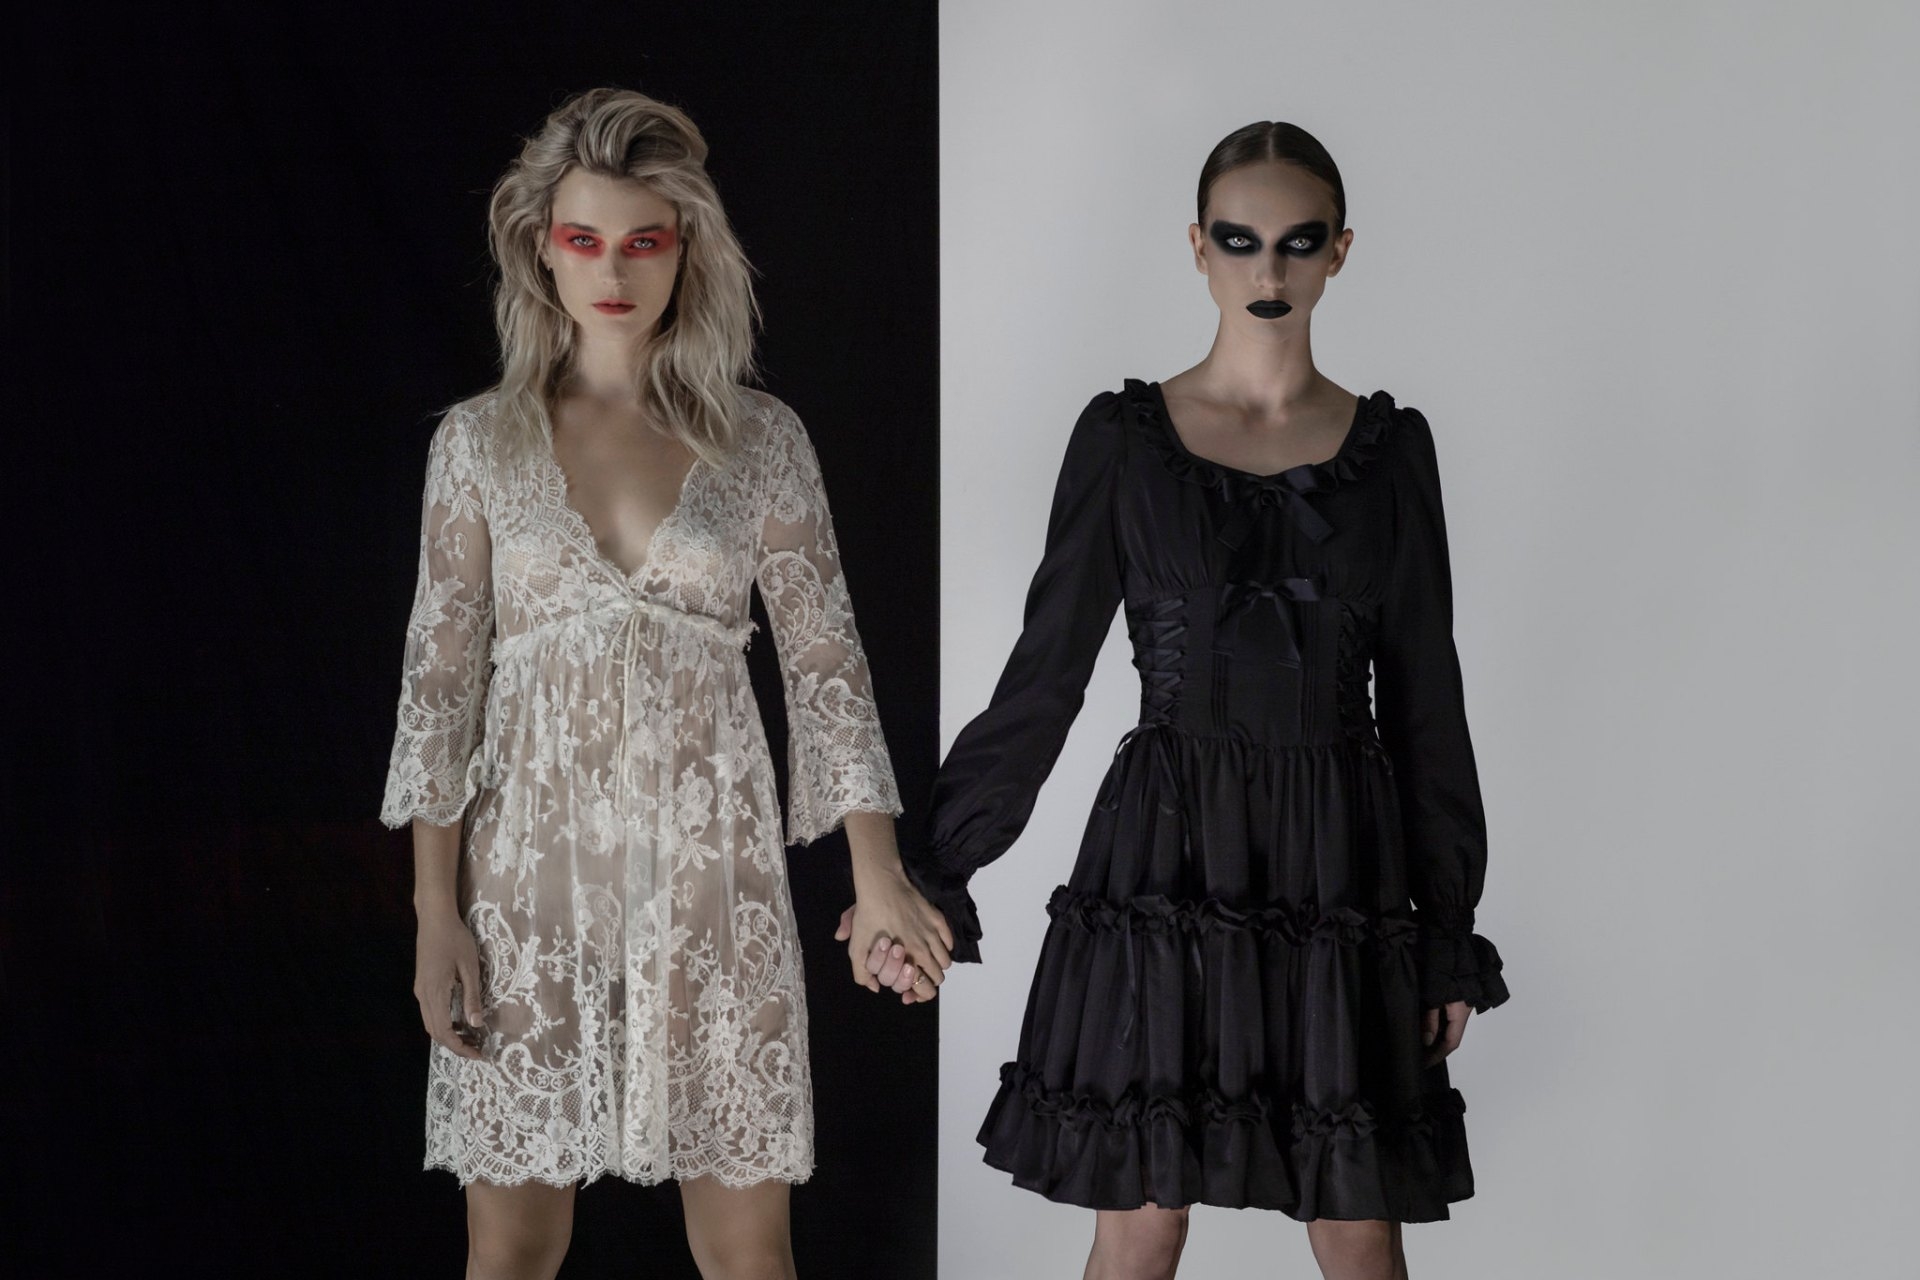 7 Places To Wear Your Halloween Costume When You Haven't Been Invited To A Single Party